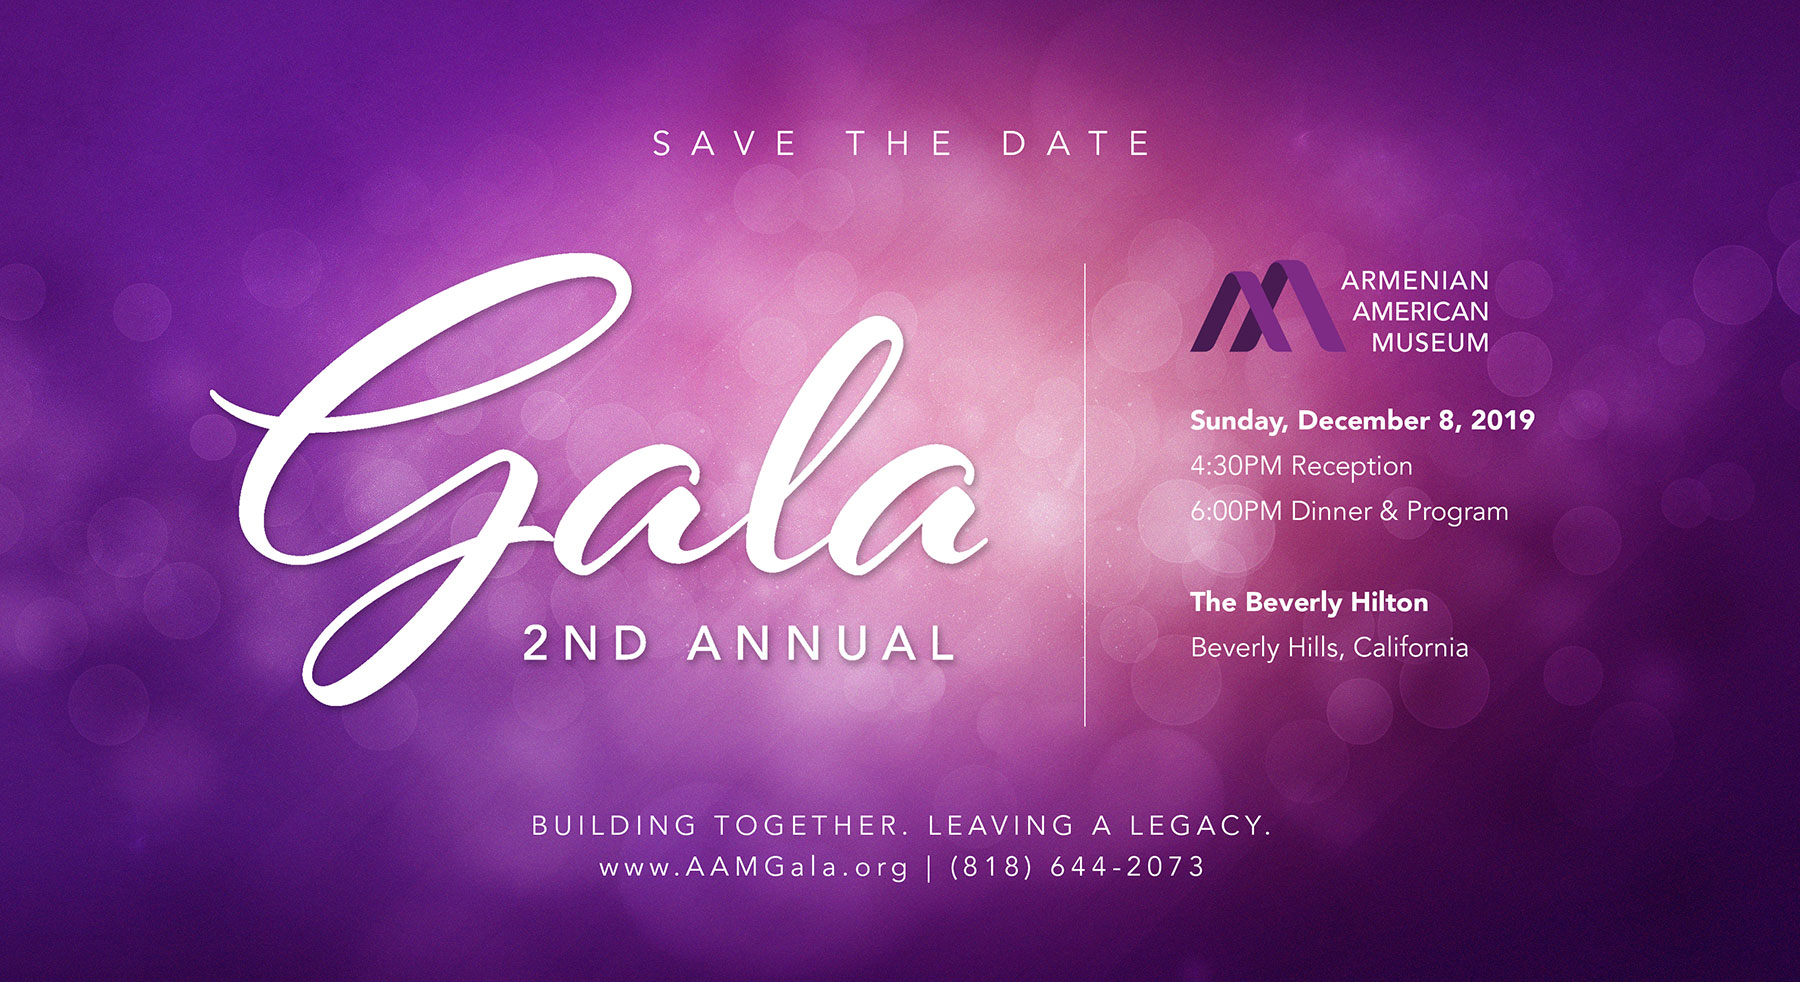 2nd Annual Armenian American Museum Gala Save the Date